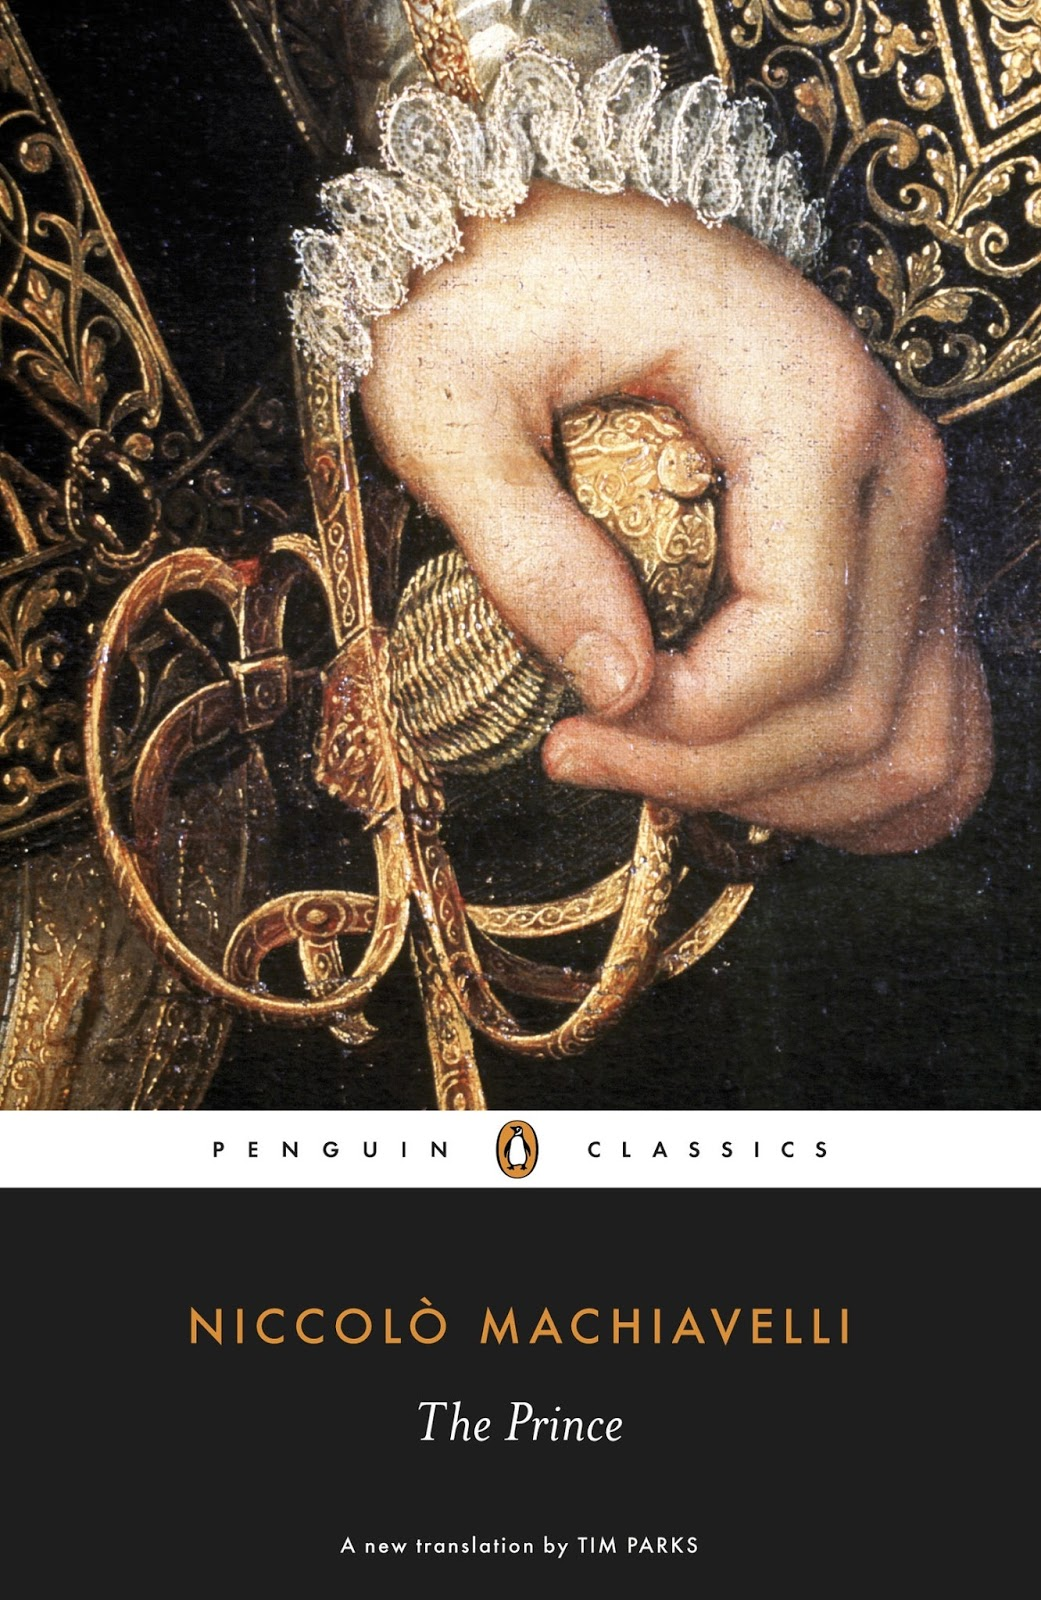 a description of machiavelli main idea in the qualities of the prince In this work, the qualities of a prince, we are given a point-by-point description of what a leader should do to effectively lead his country machiavelli explains that, because leadership is (obviously) a position of command, [war] is the only profession which benefits one who commands  (p 33) he.